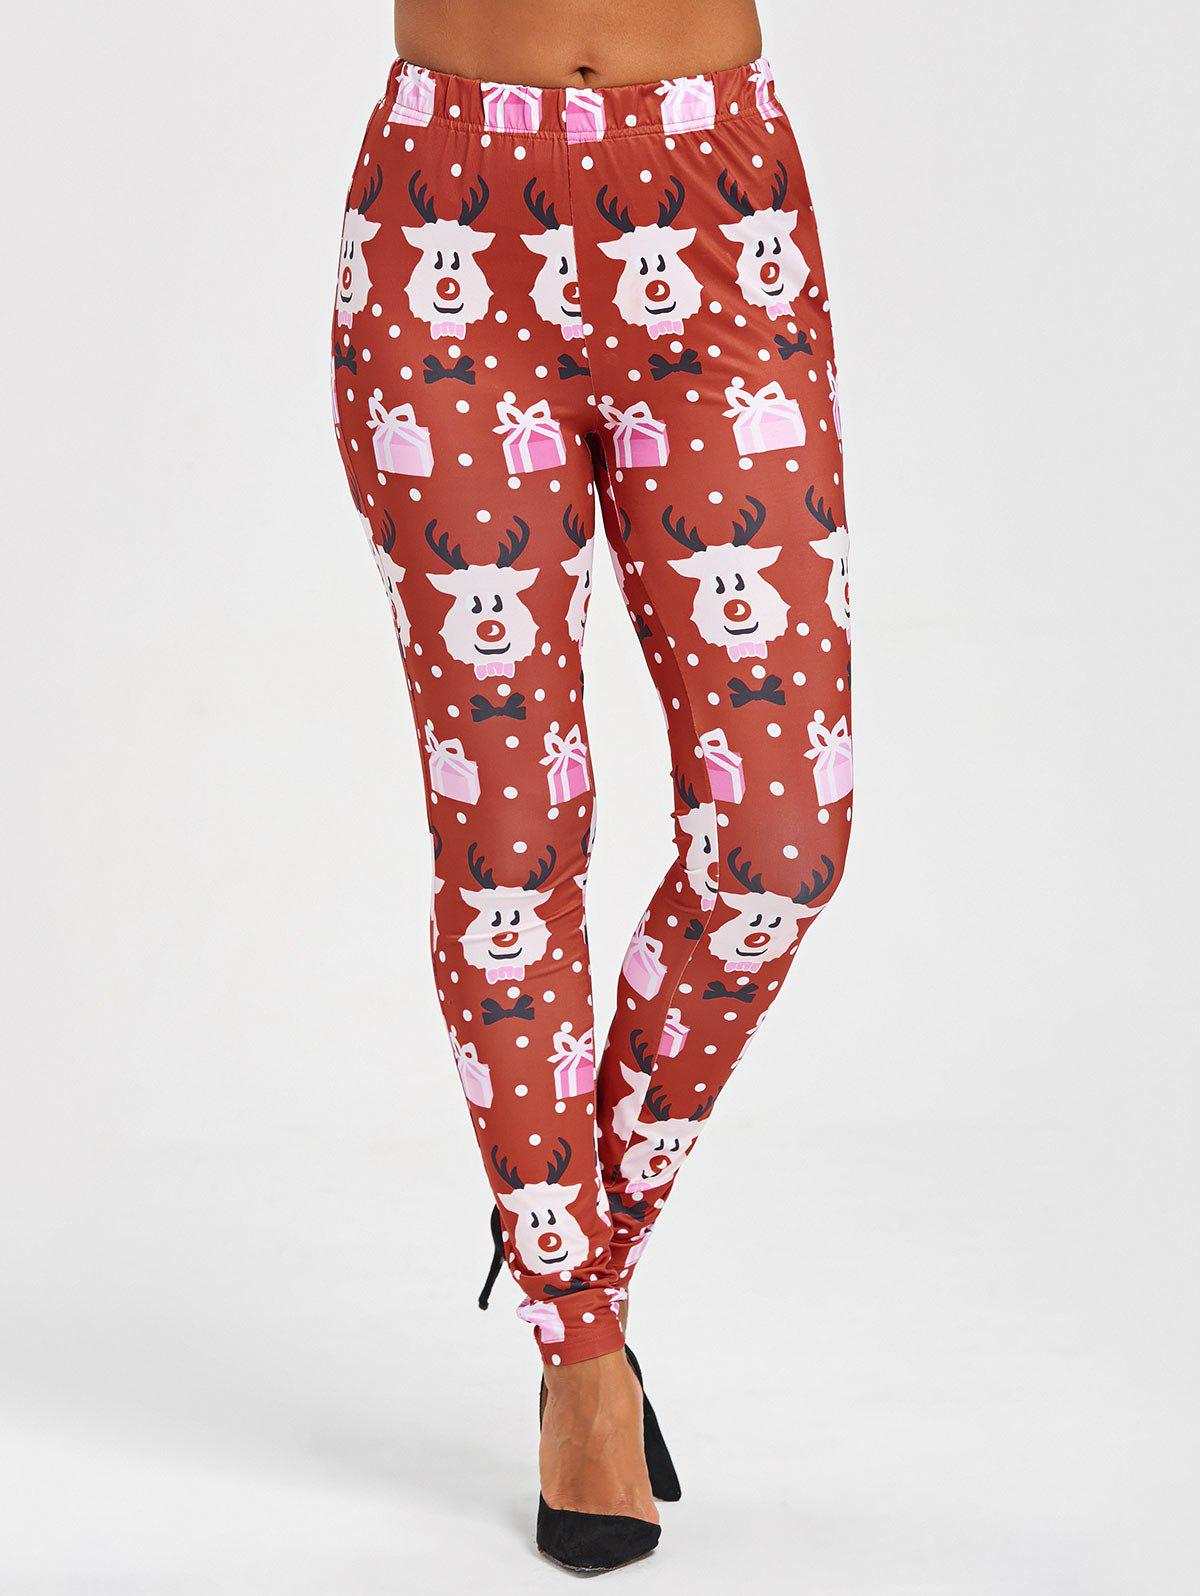 Christmas Cartoon Print Leggings - COLORMIX XL